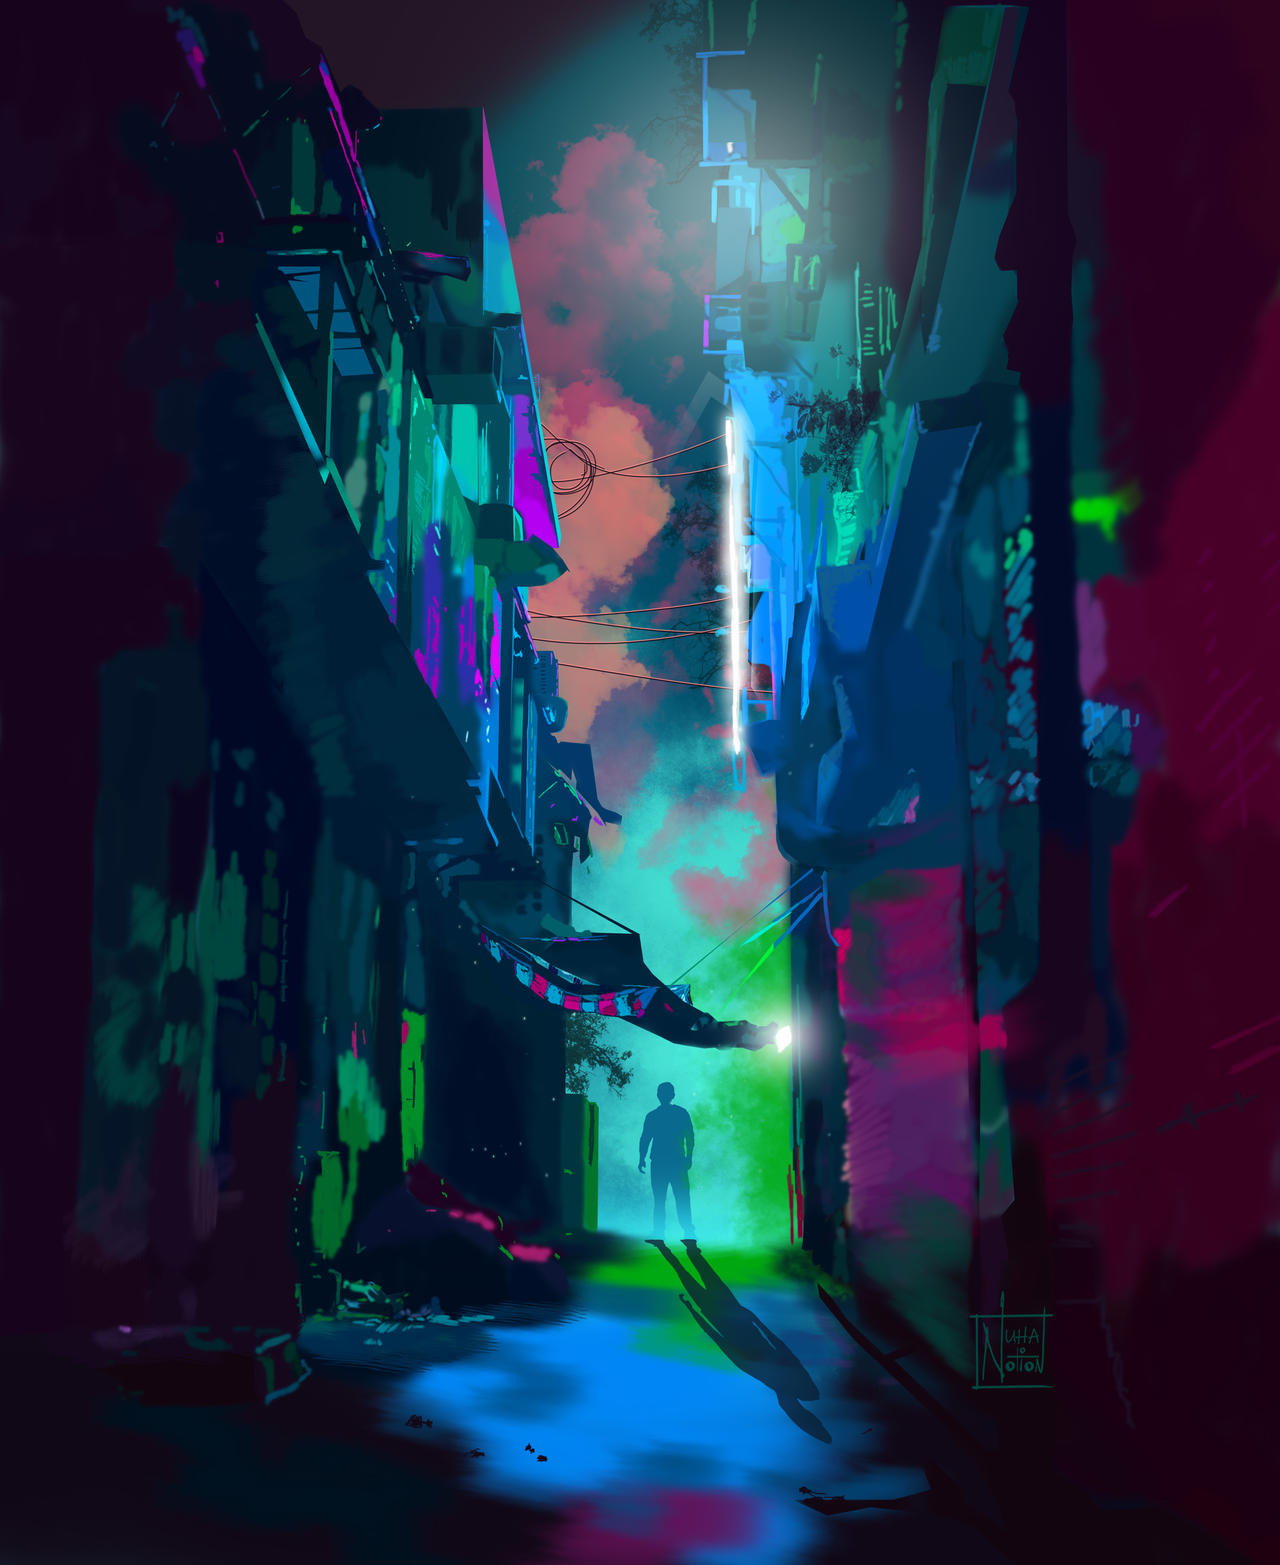 Mystery Alley